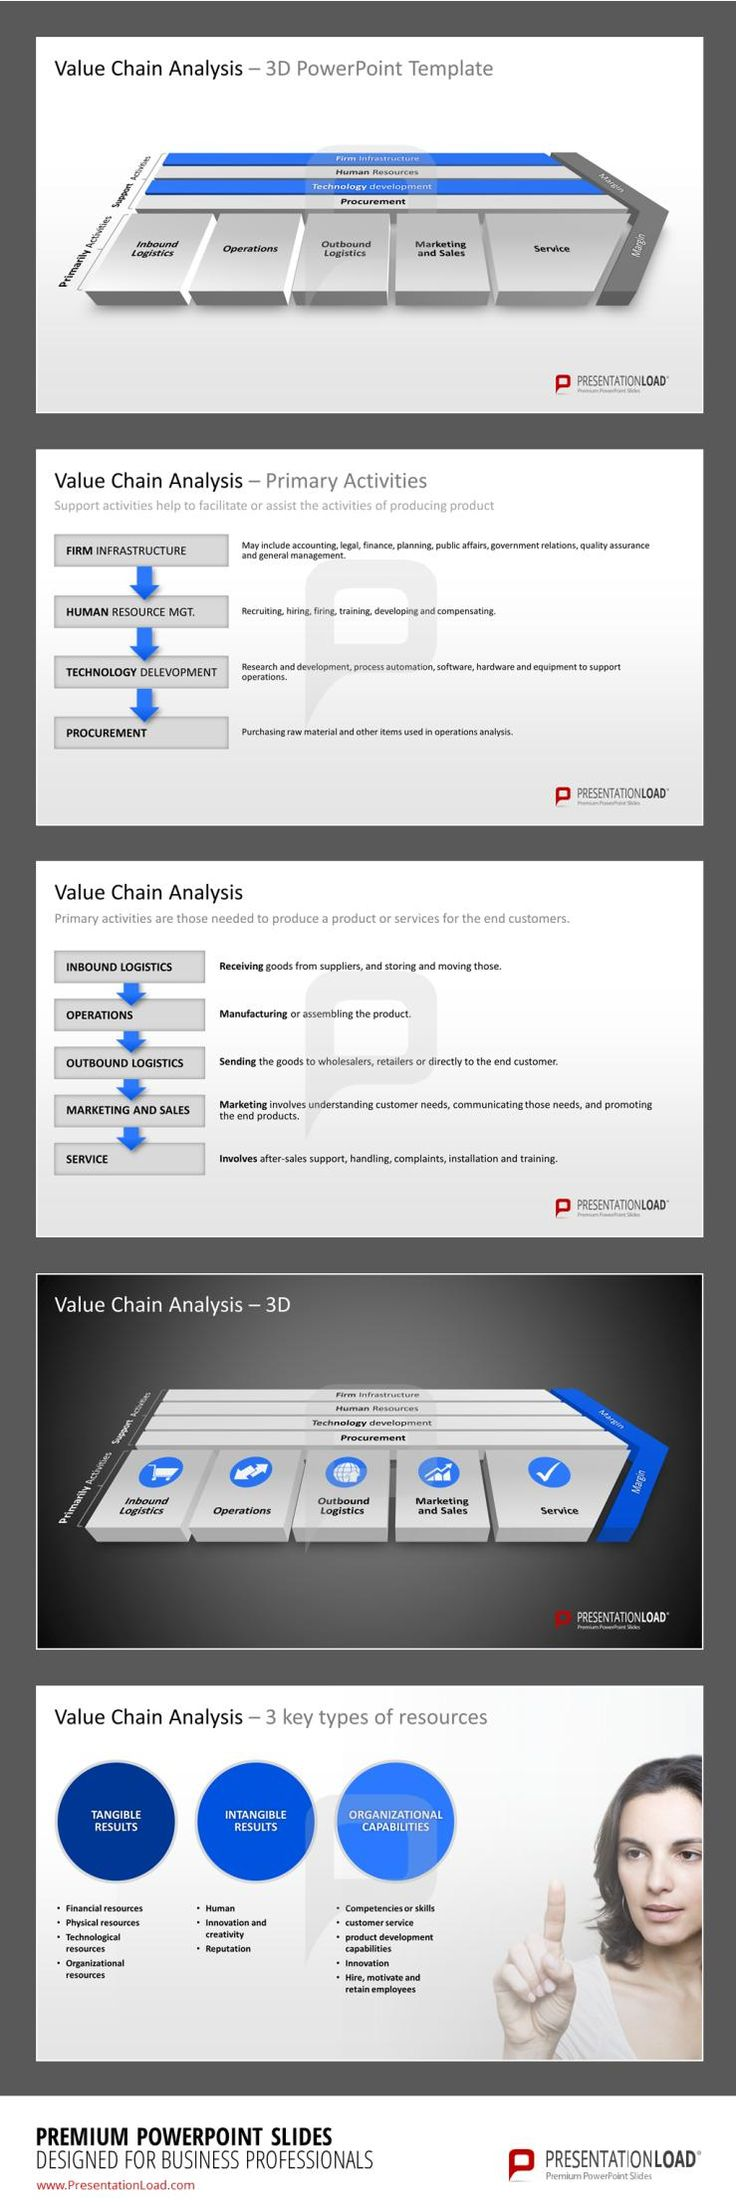 PowerPoint Templates for Value Chain Analysis. Management PPT slides to analyse important activities and factors that increase value for your company and business. #presentationload  www.presentationl...